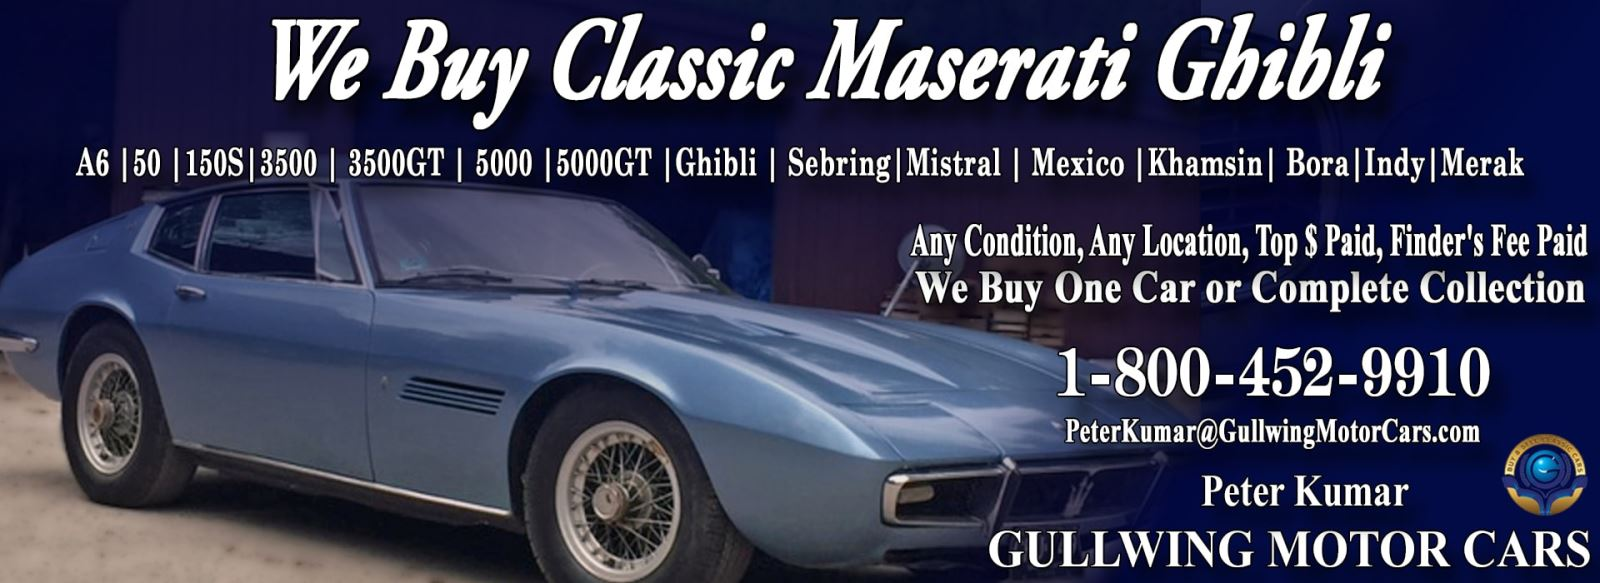 Classic Maserati Ghibli for sale, we buy vintage Maserati Ghibli. Call Peter Kumar. Gullwing Motor